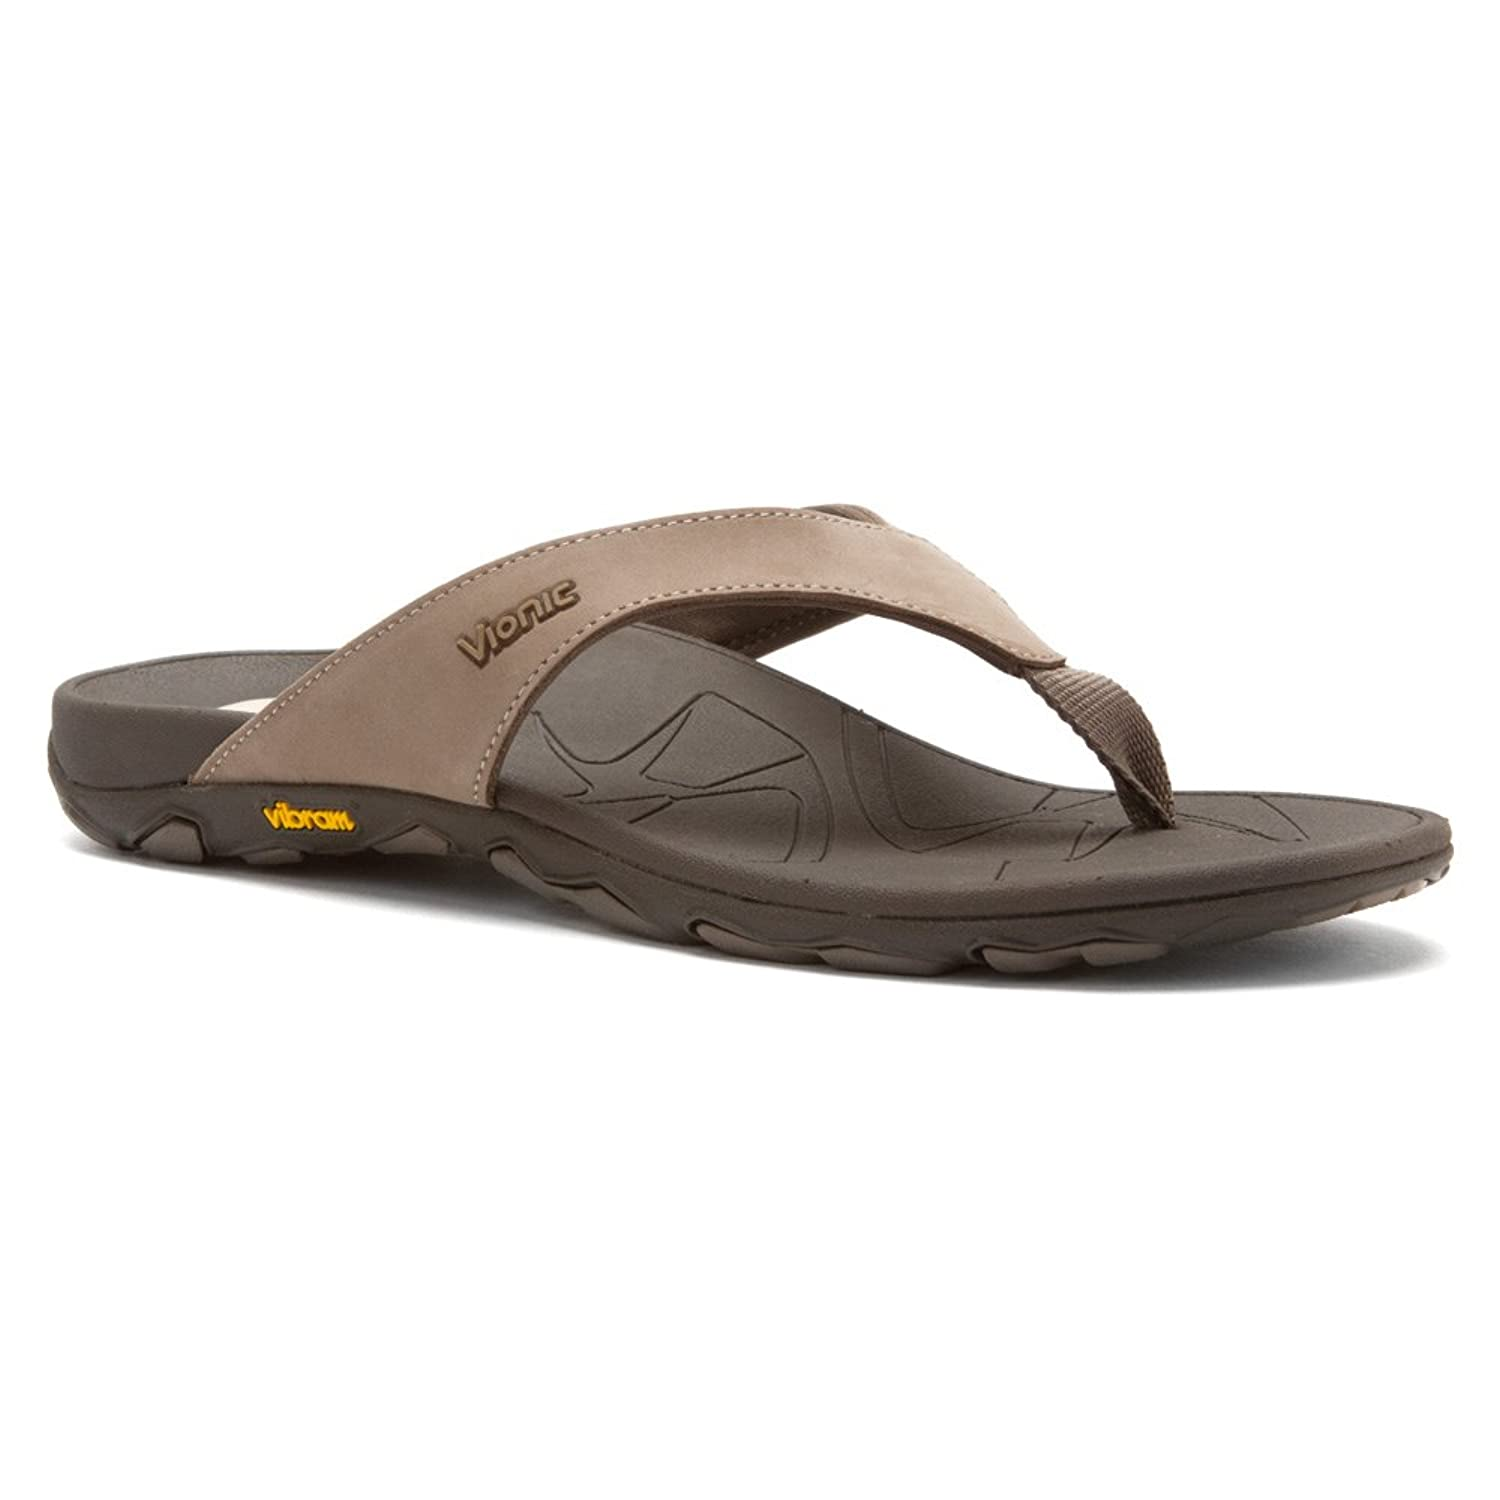 786ec10cad7d Men s Vionic Bryce Sandals with Orthaheel Technology for Plantar Fasciitis